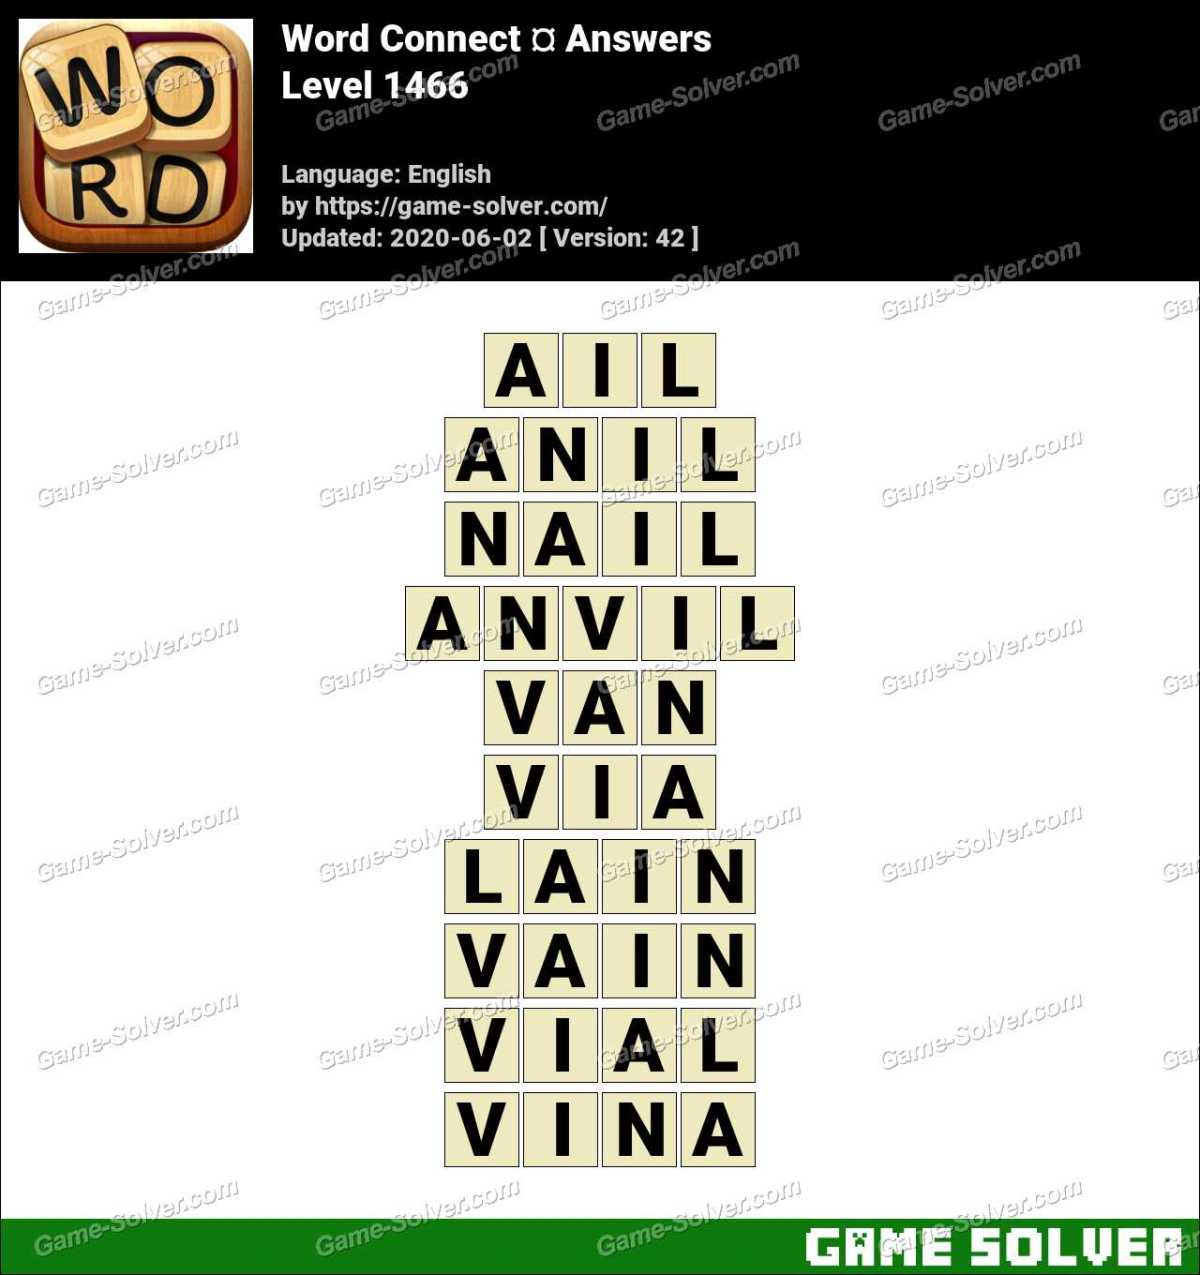 Word Connect Level 1466 Answers